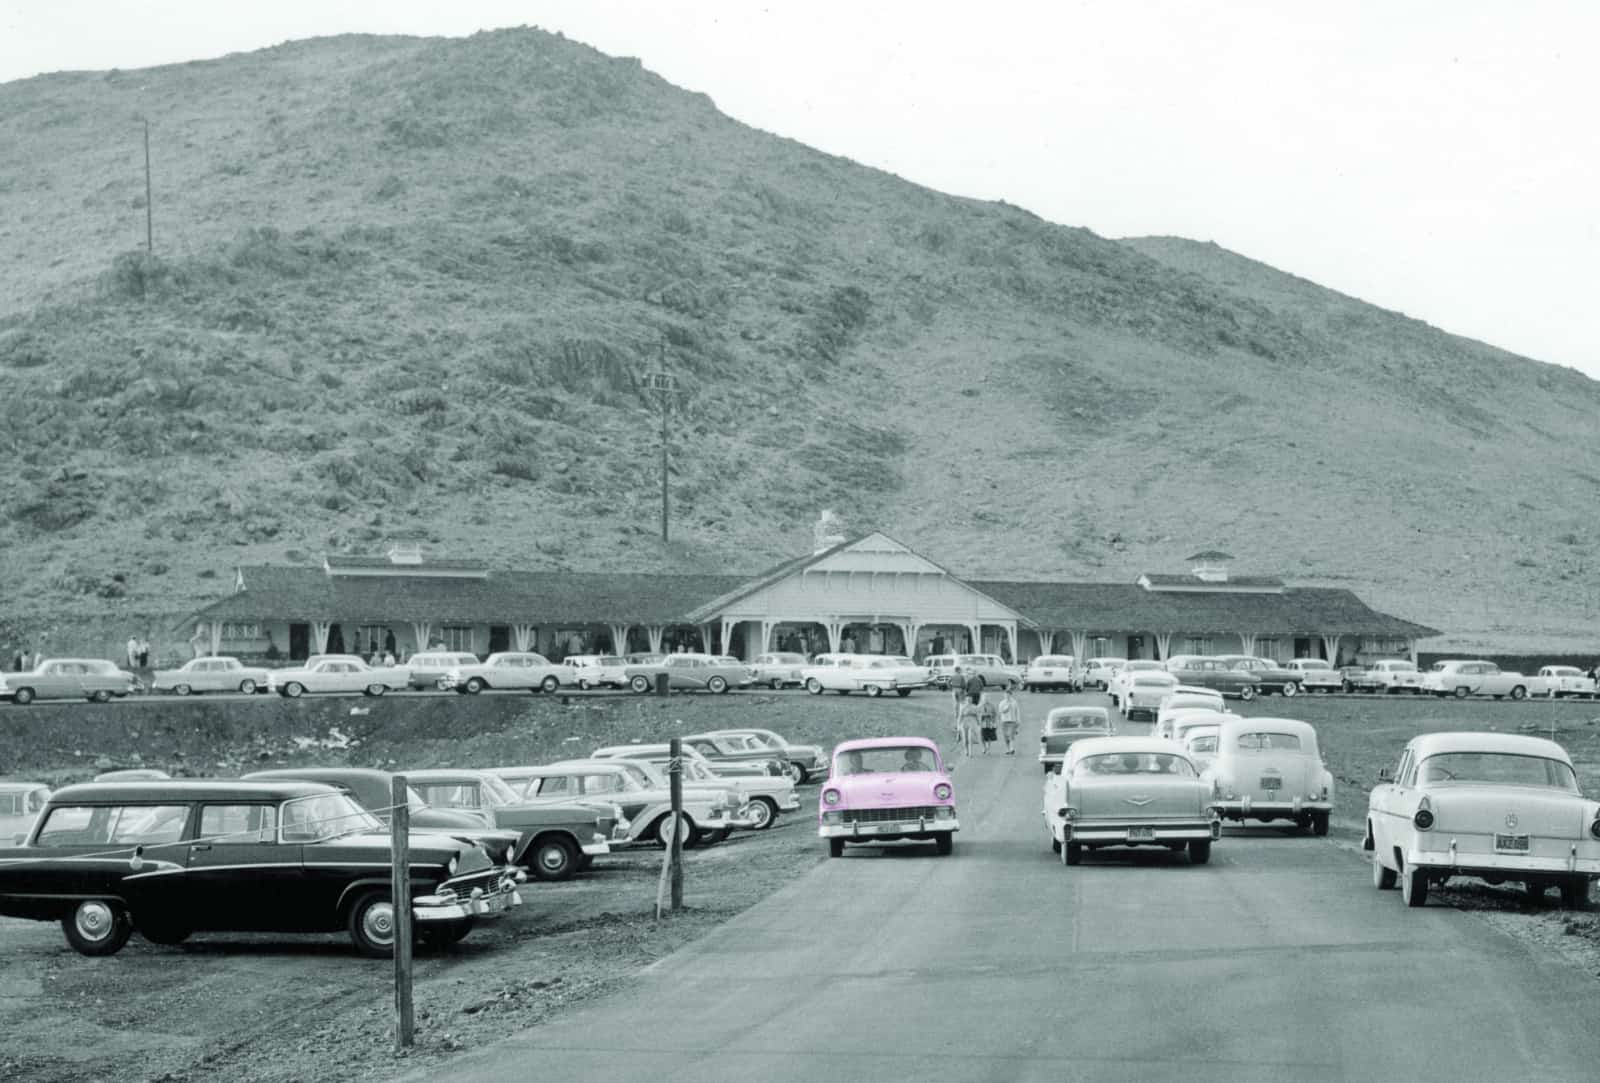 Vintage shot of the Inn, much smaller, with 1950s cars in the parking lot